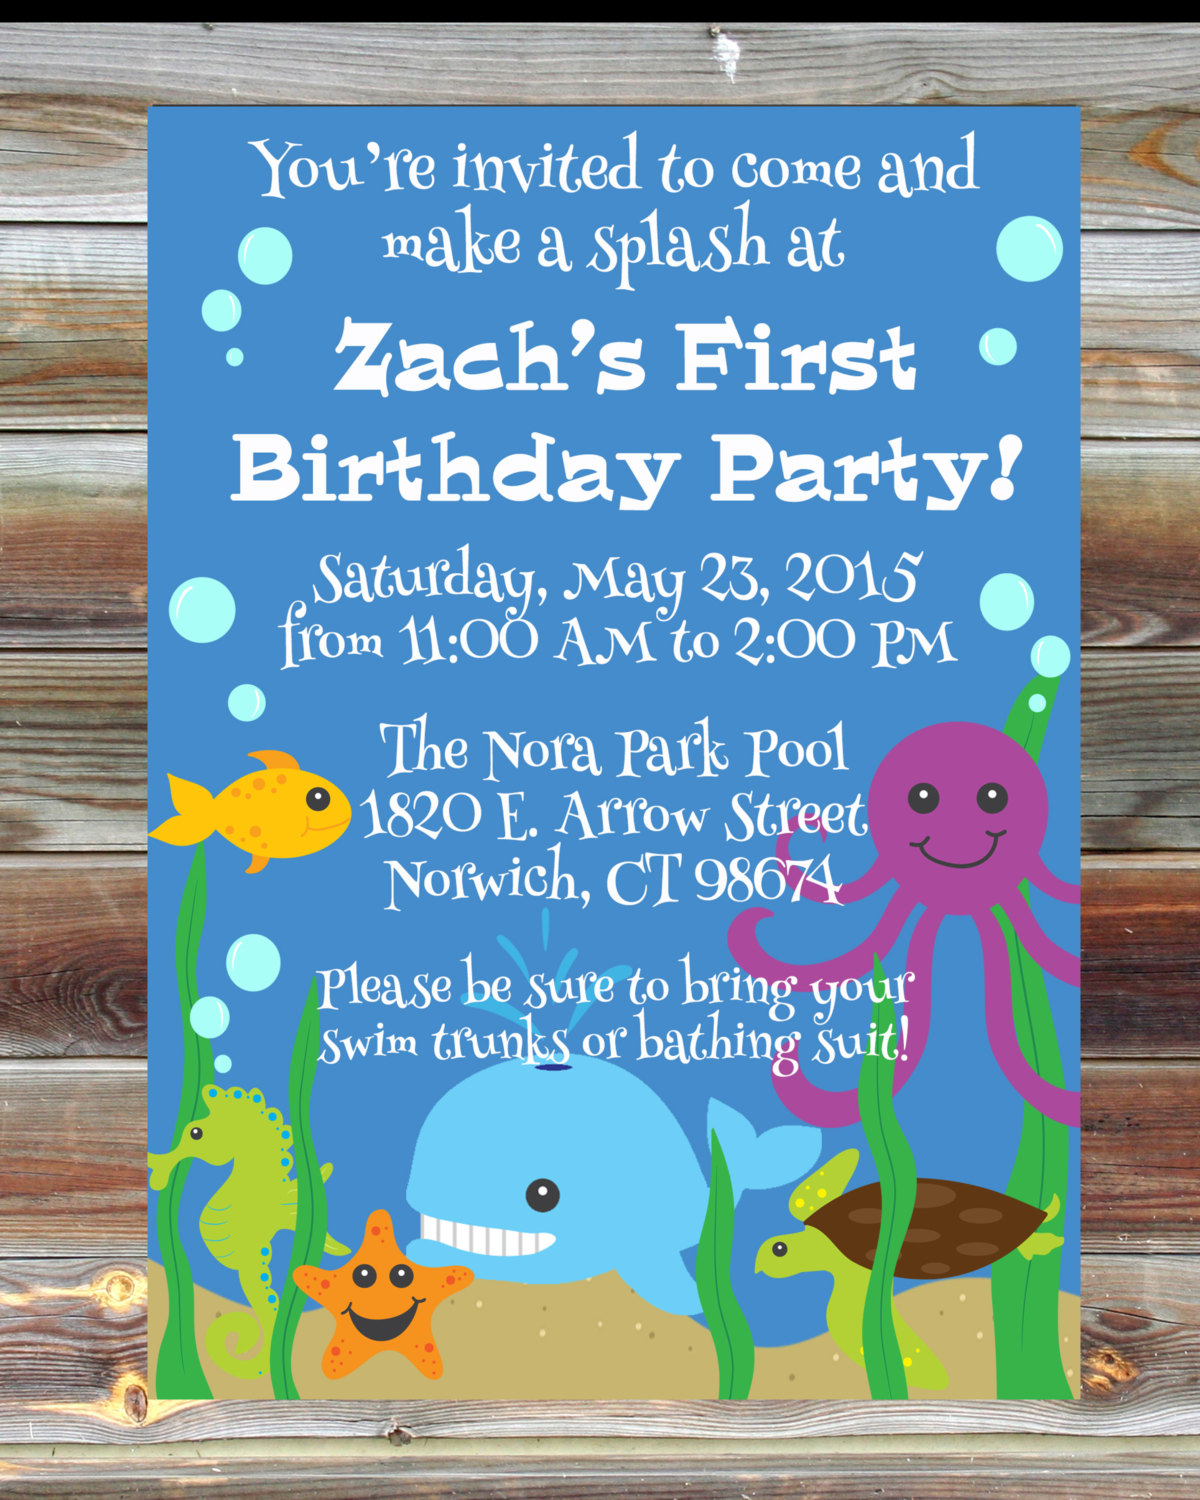 custom photo birthday party invitations ; 0c6968a5758a5cd6786df68451e20982